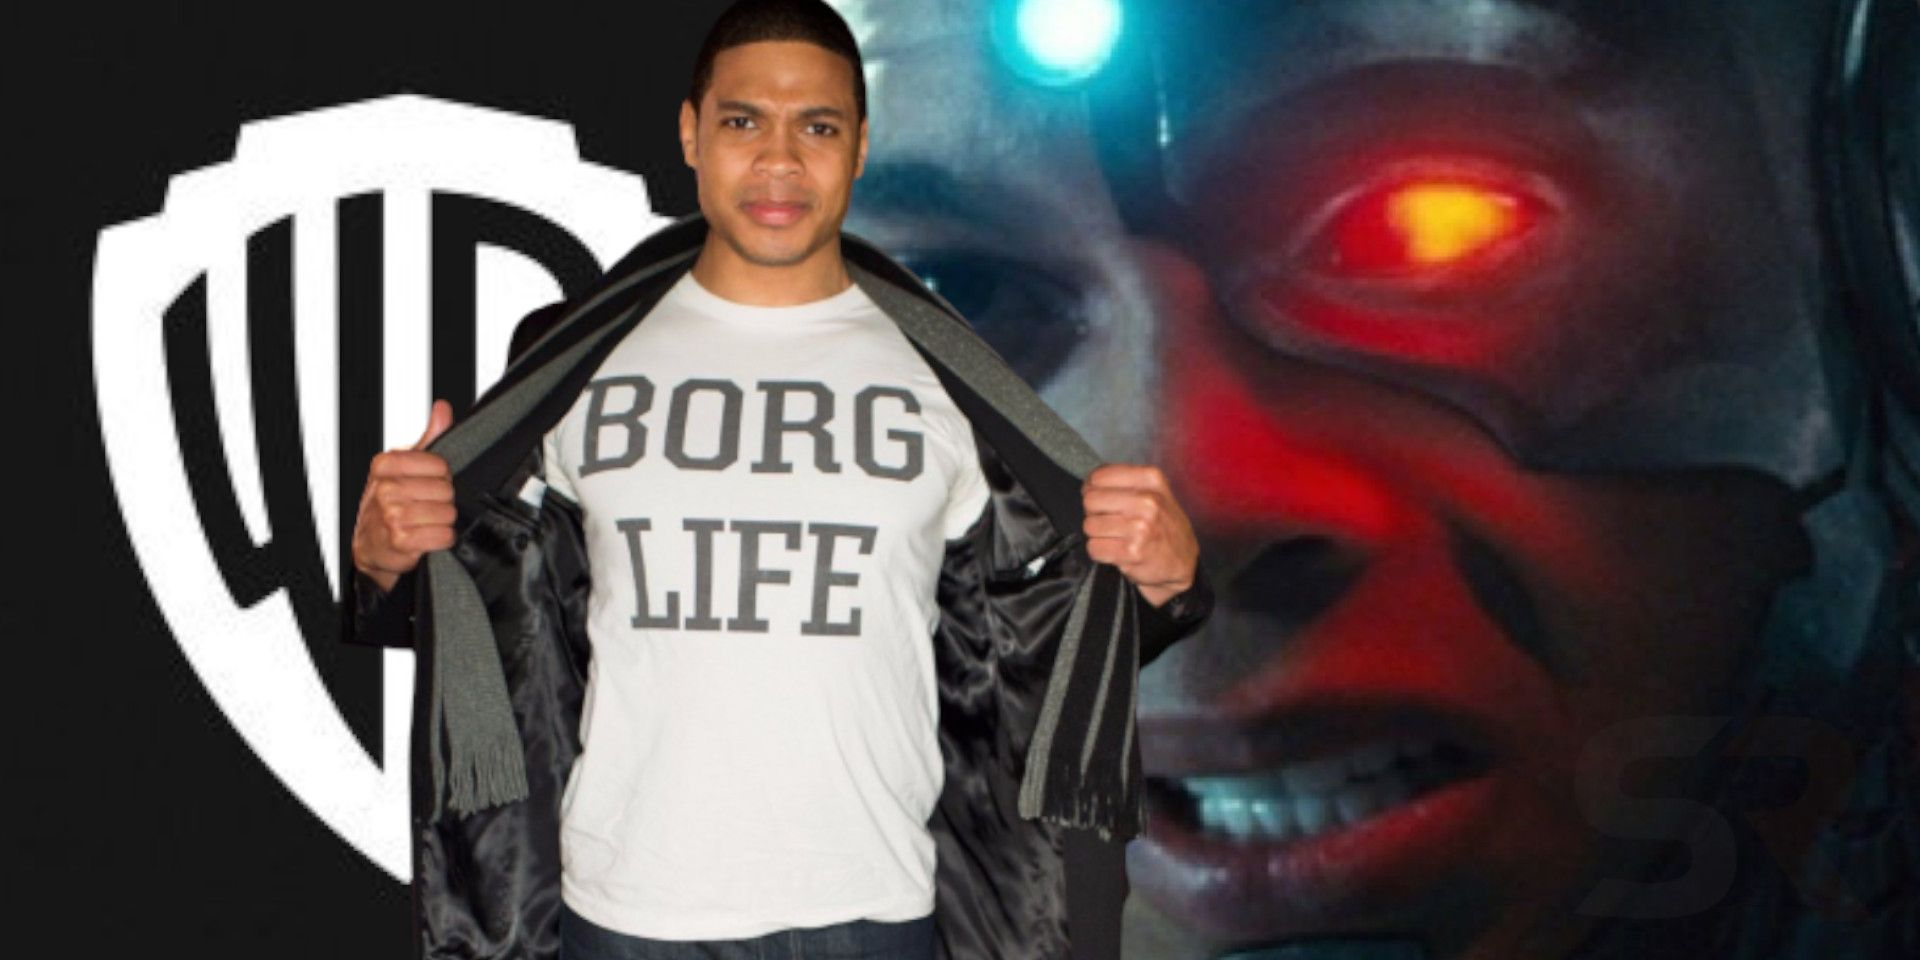 Justice League Investigation Recording Proves Ray Fisher Backed Up His Claims